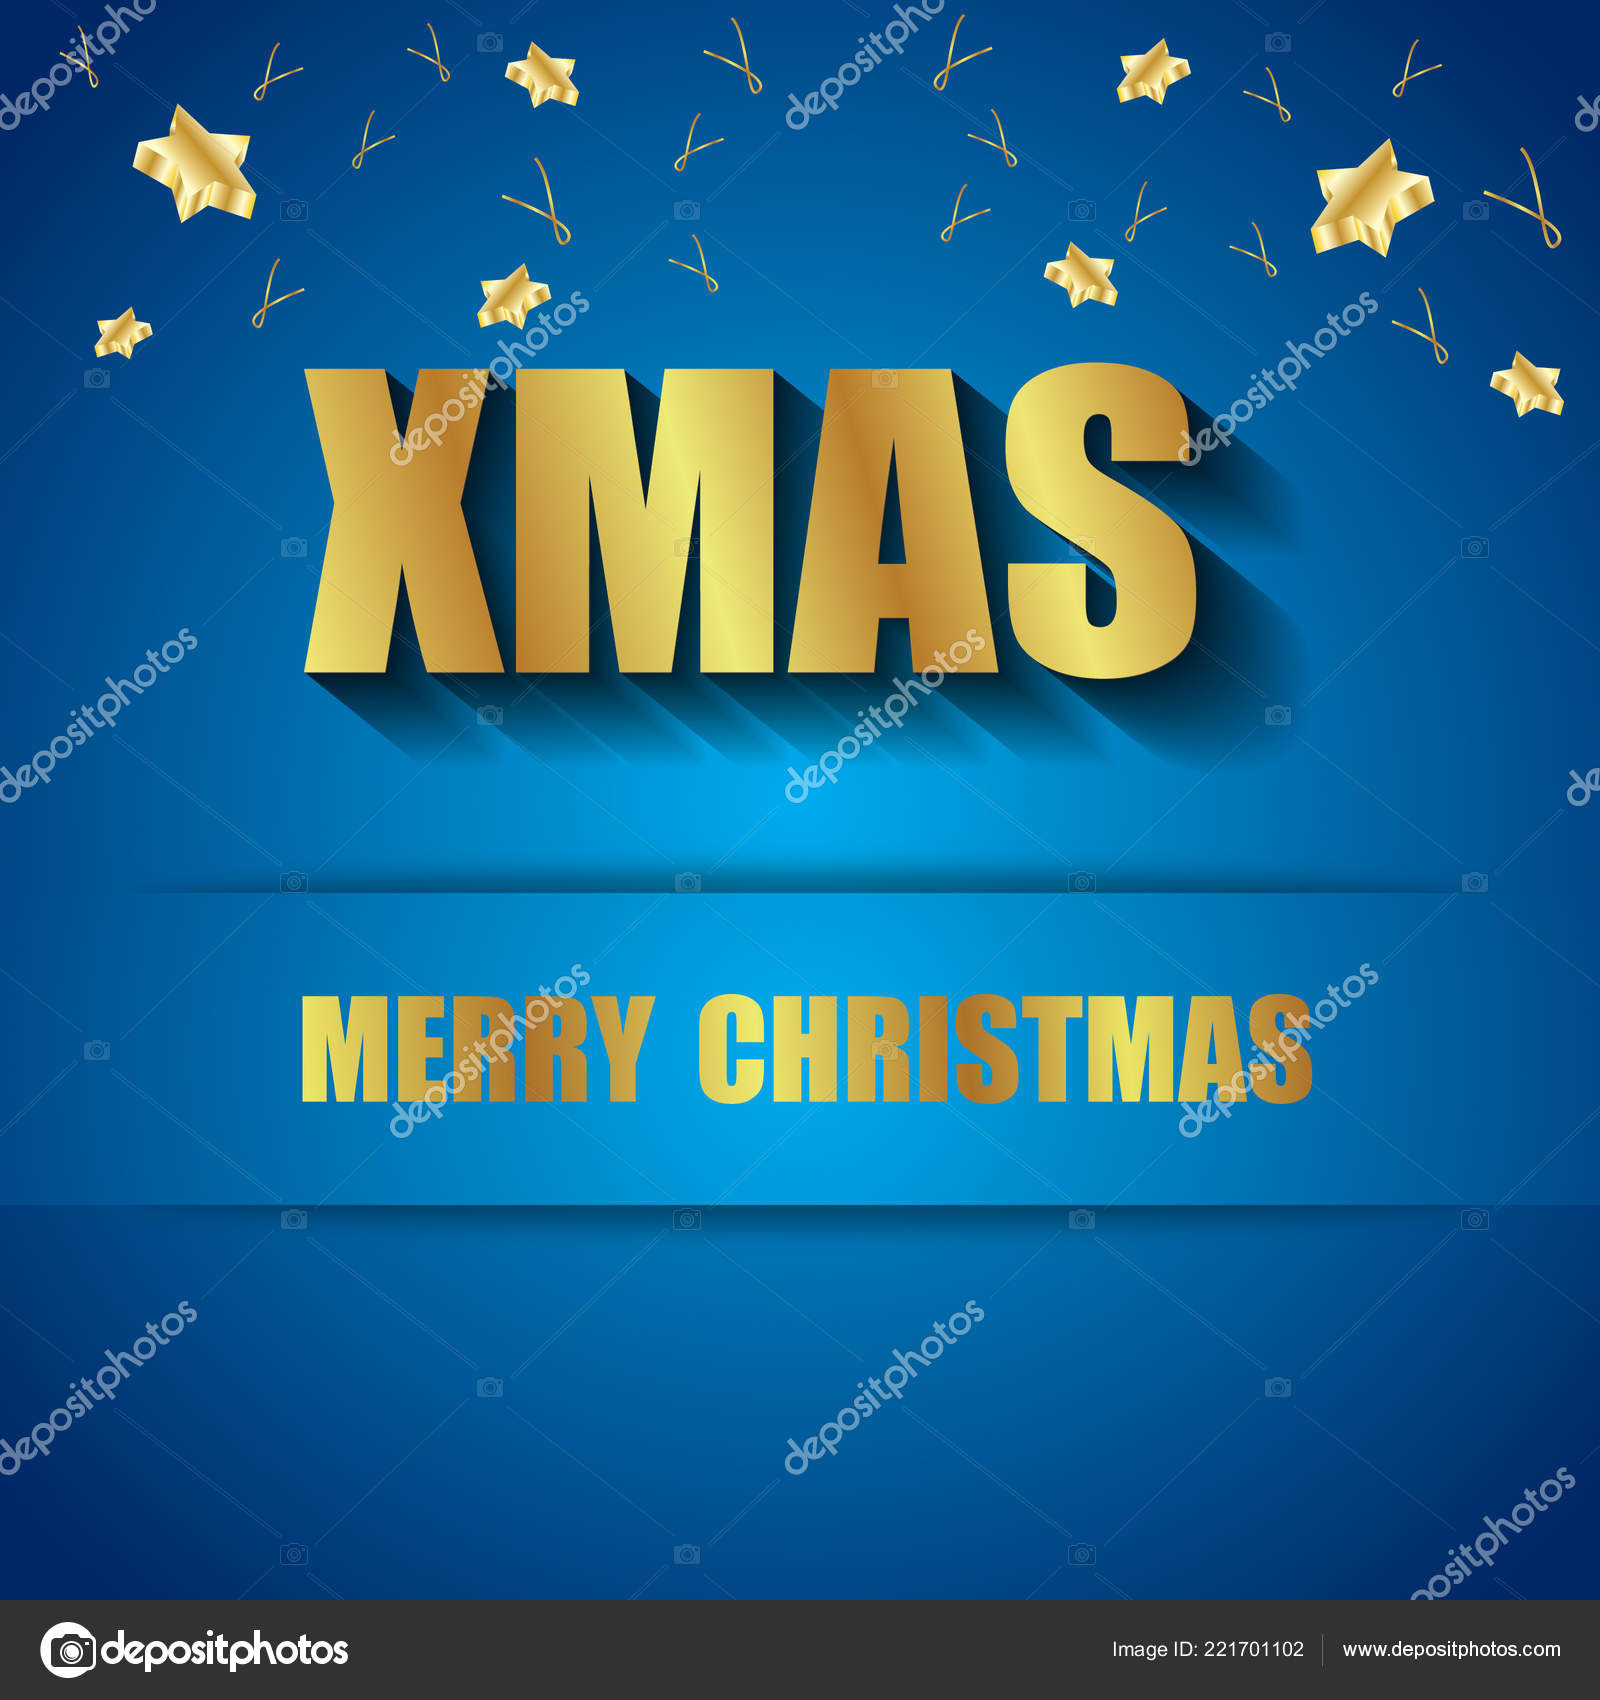 2019 merry christmas background your invitations festive posters